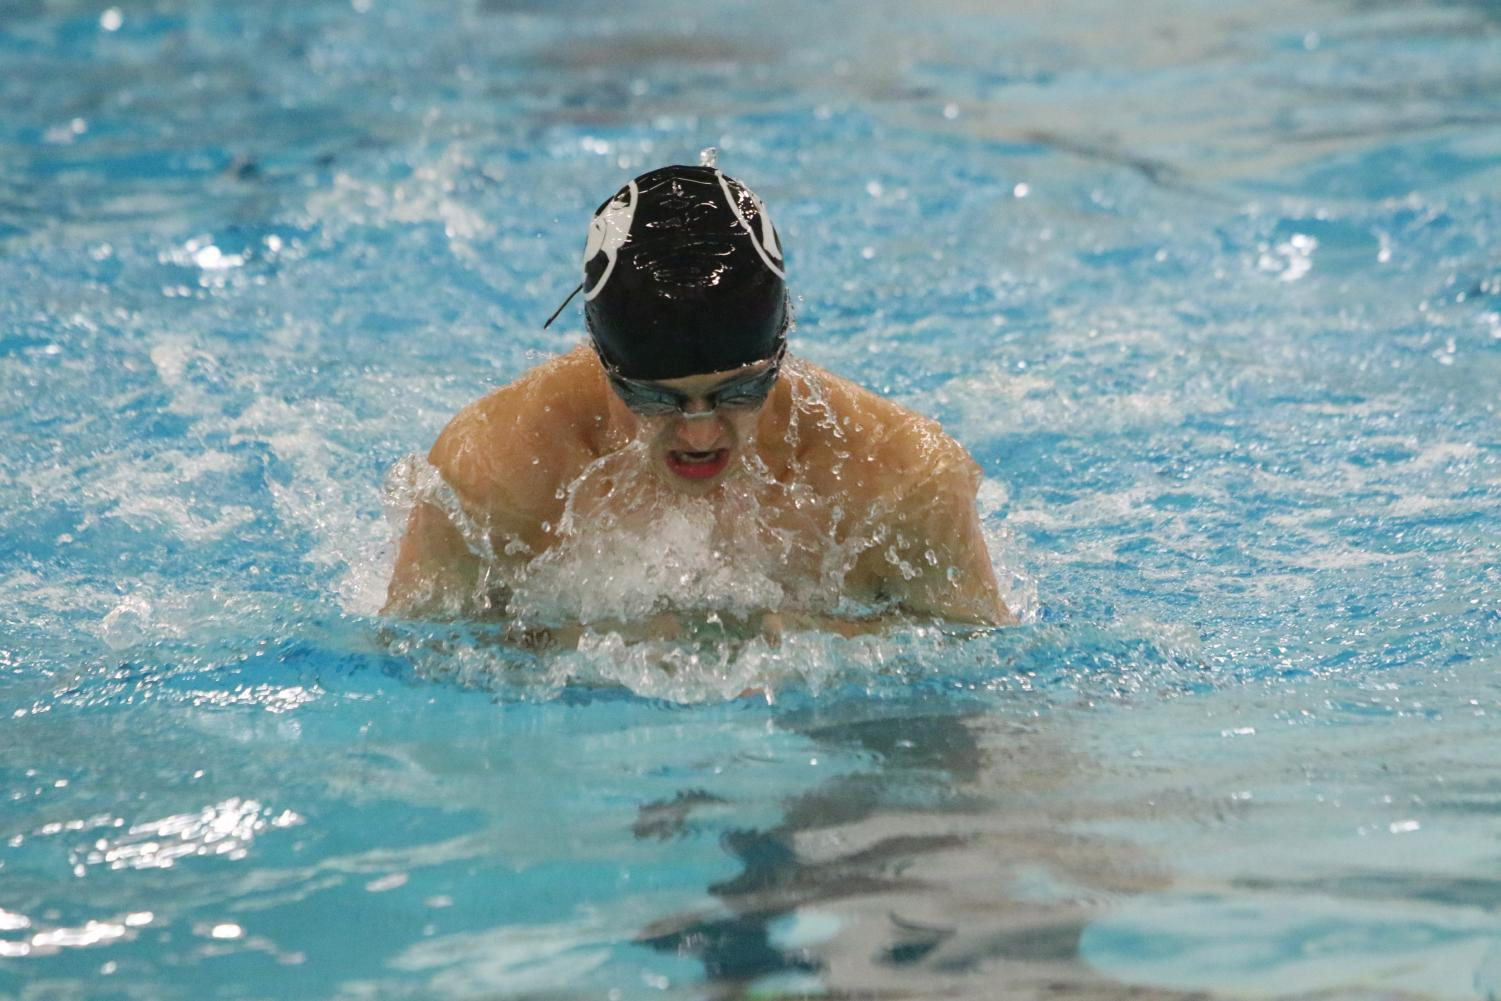 Senior Alec Danko surfaces to take a breath during the 100 yard breast stroke race.